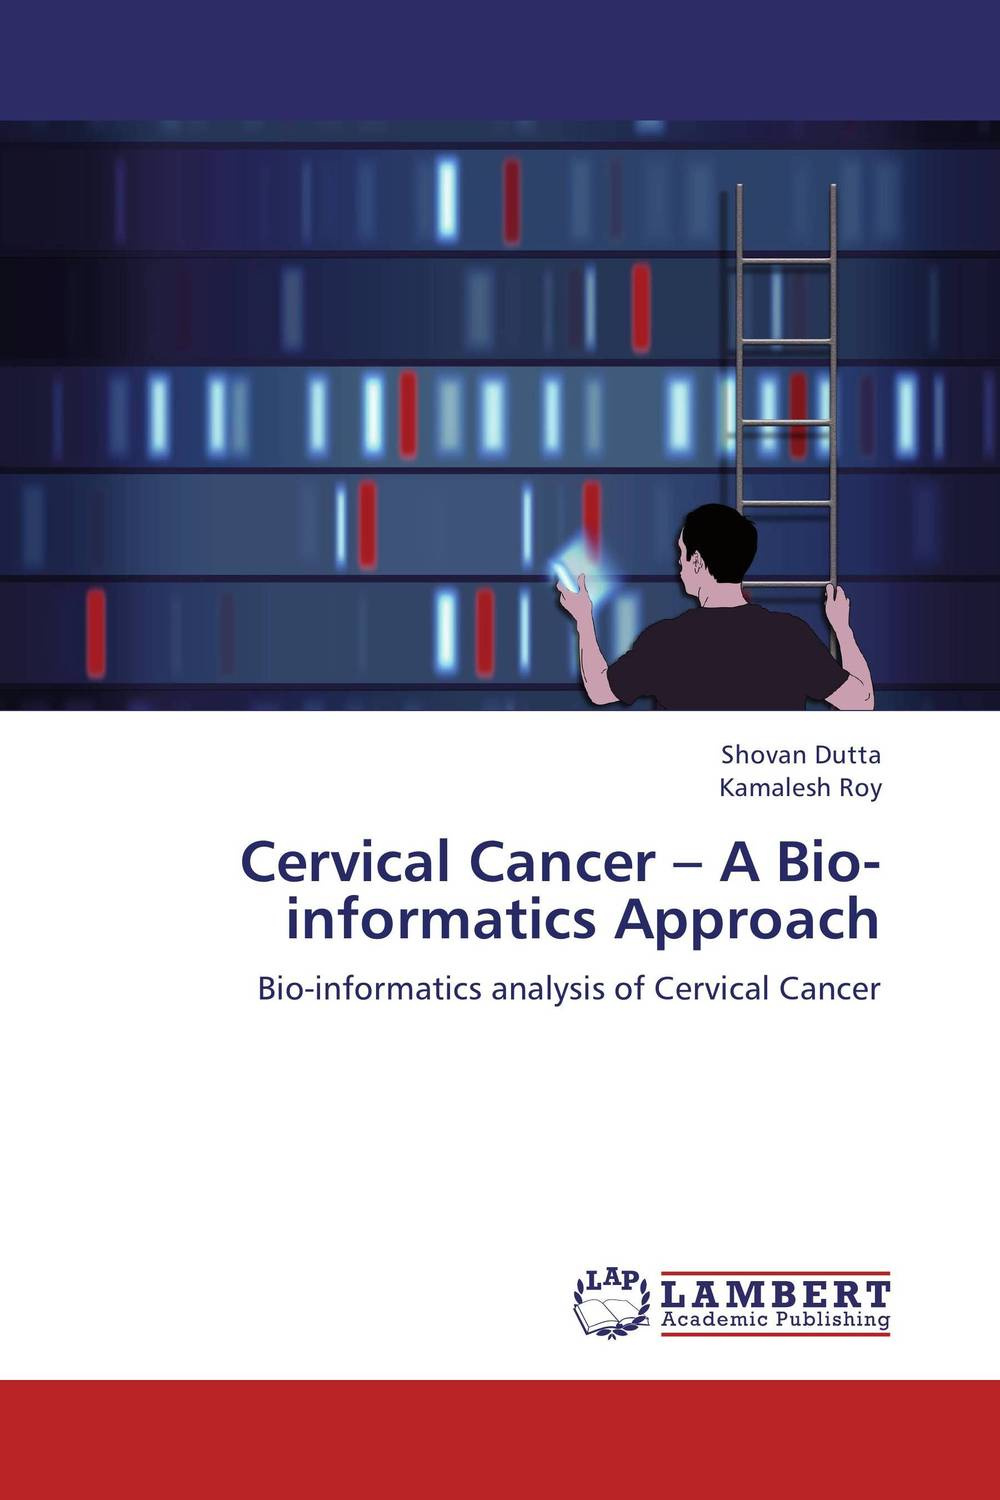 Cervical Cancer – A Bio-informatics Approach late stage diagnosis of cervical cancer